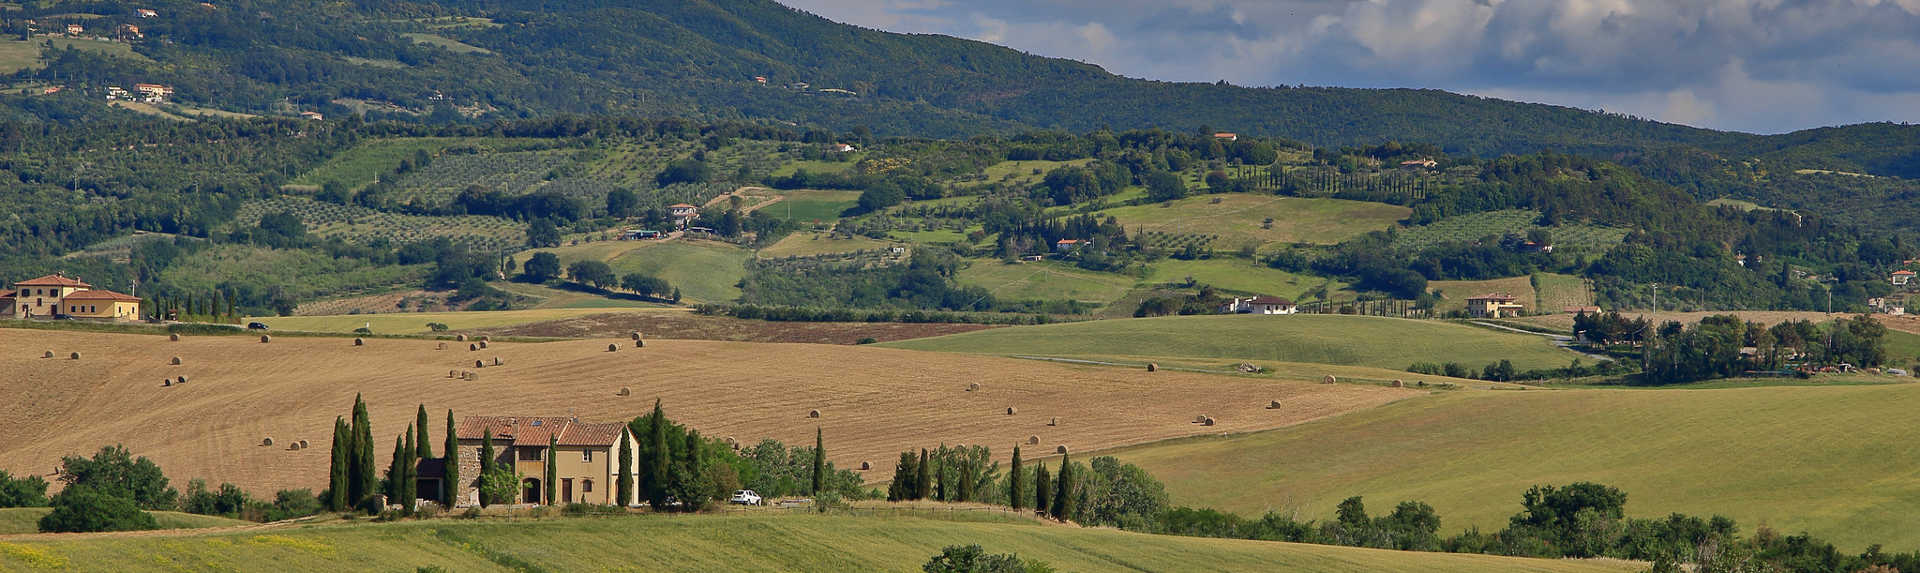 What is the prettiest town in Tuscany?